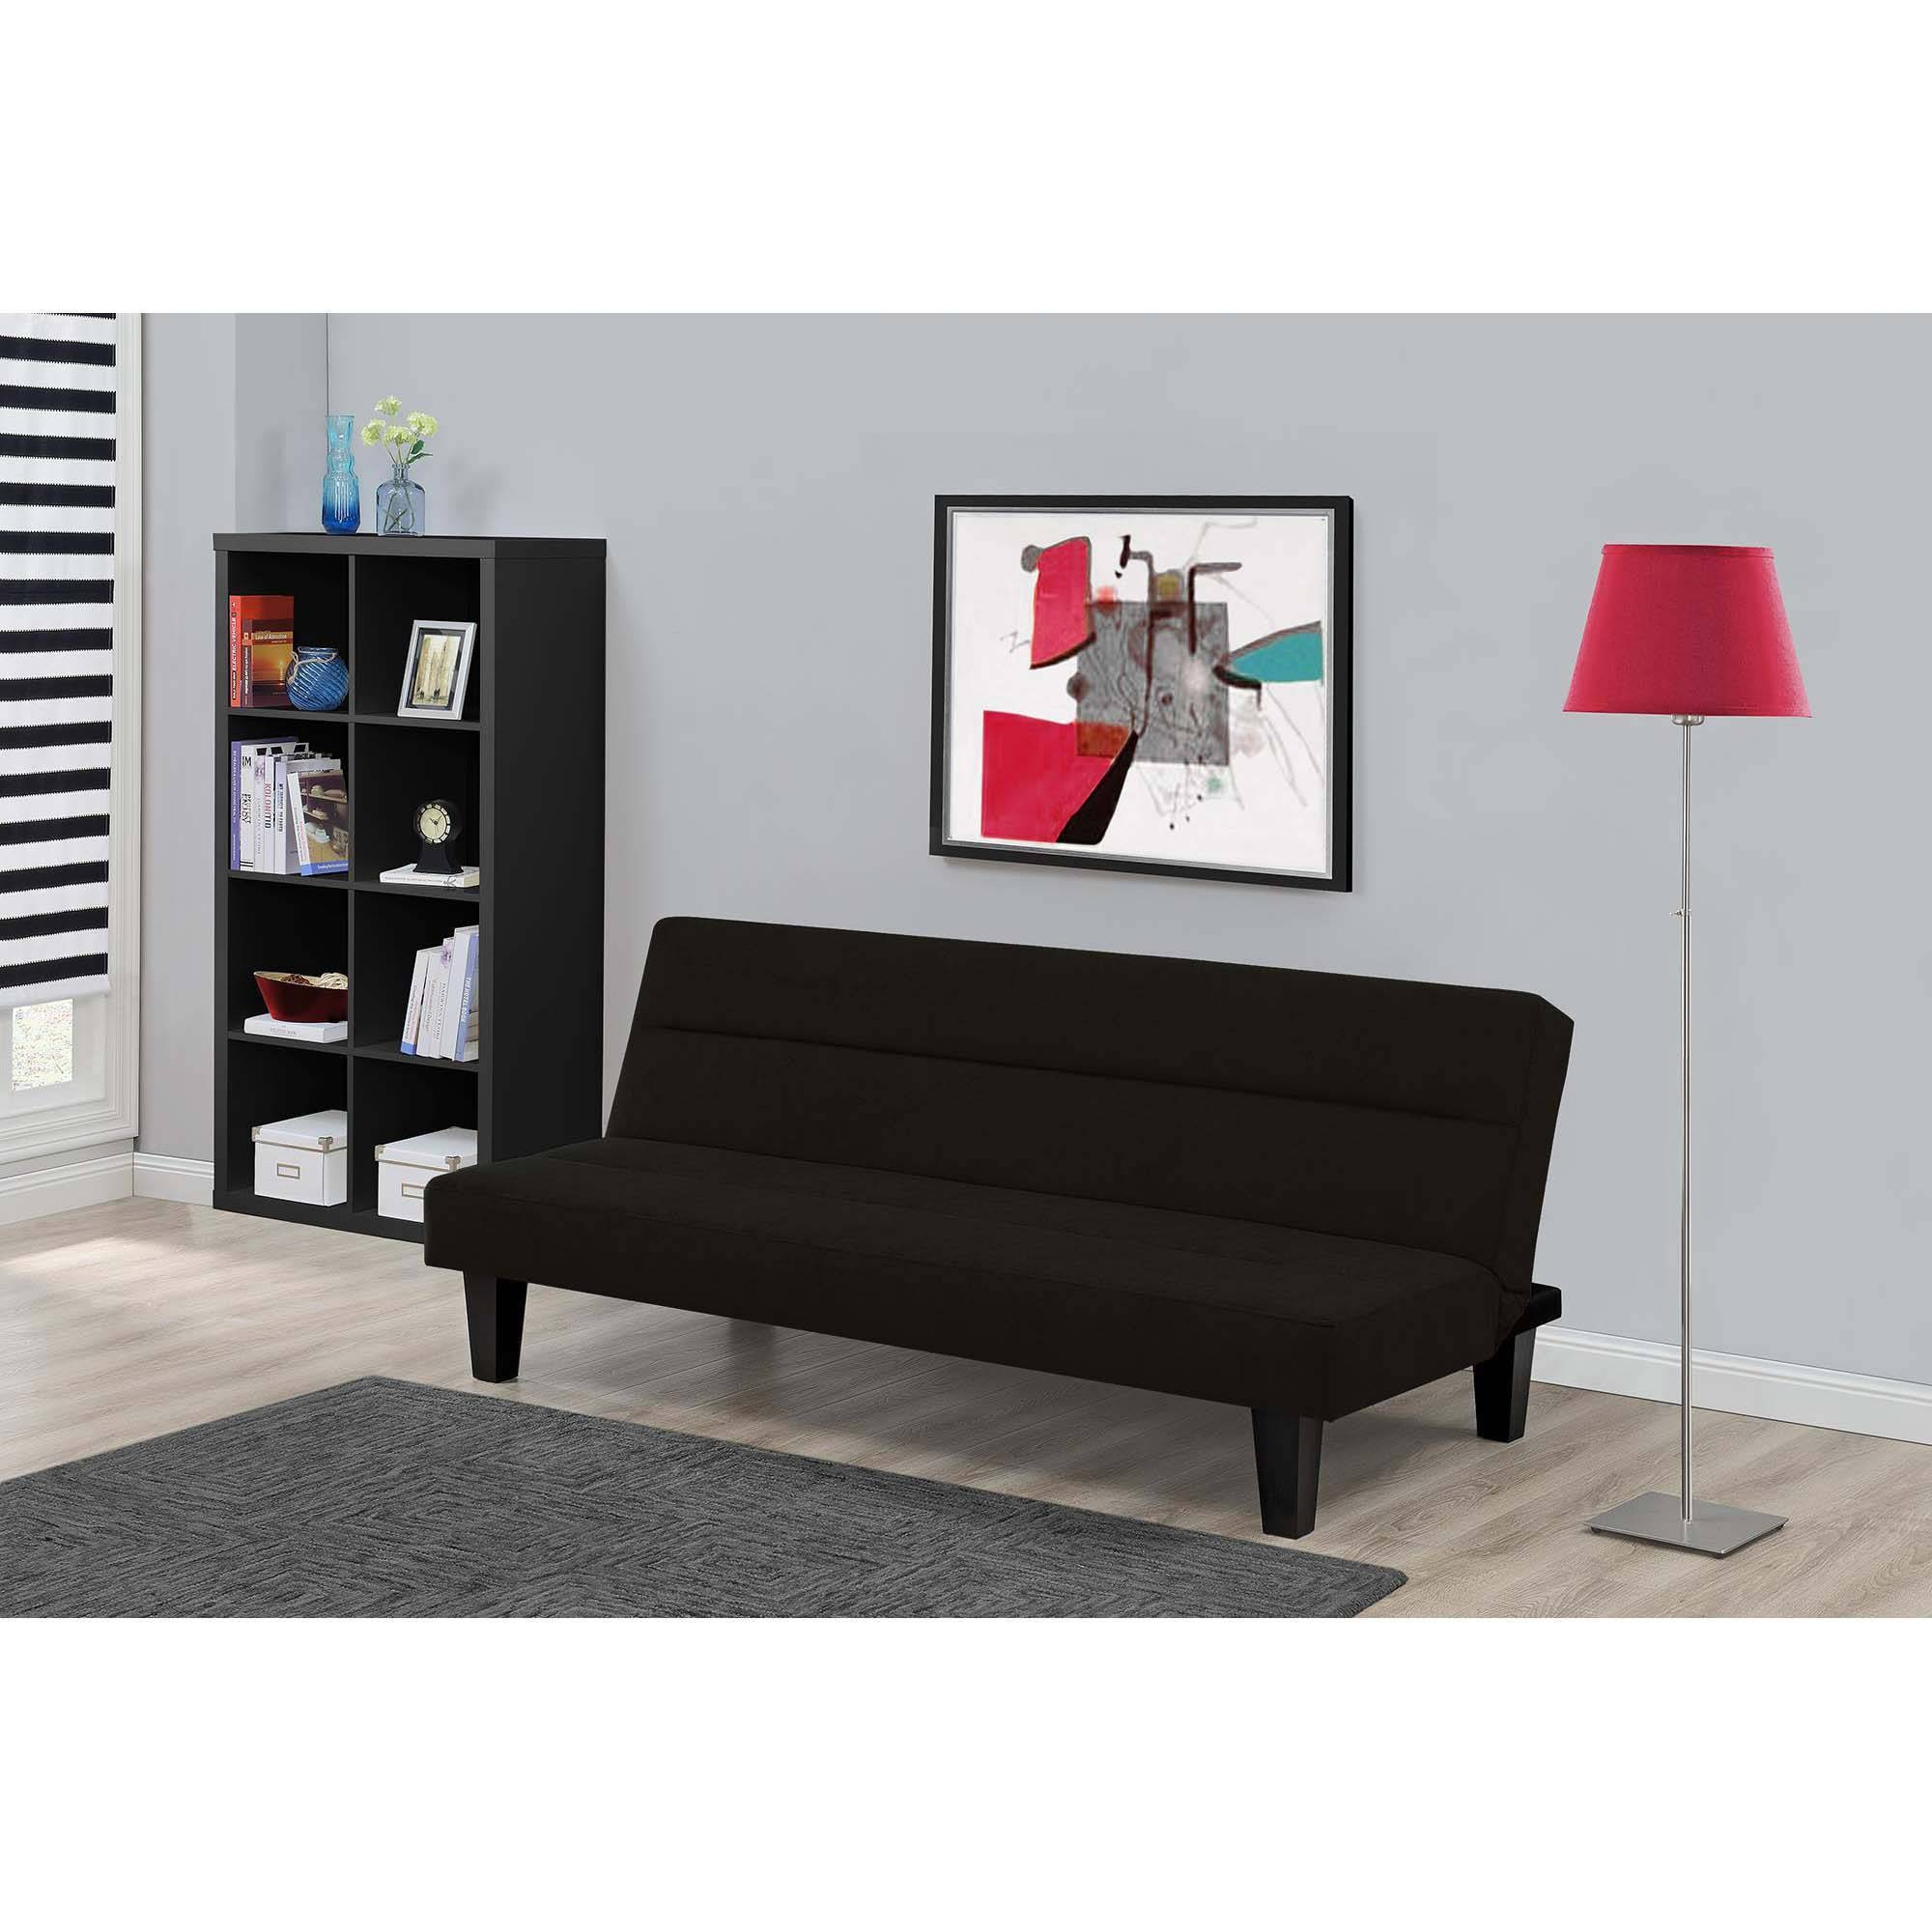 Kebo Twin Size Futon Sofa Bed Brown Black Blue Gray Couch Sleeper inside Kebo Futon Sofas (Image 11 of 15)